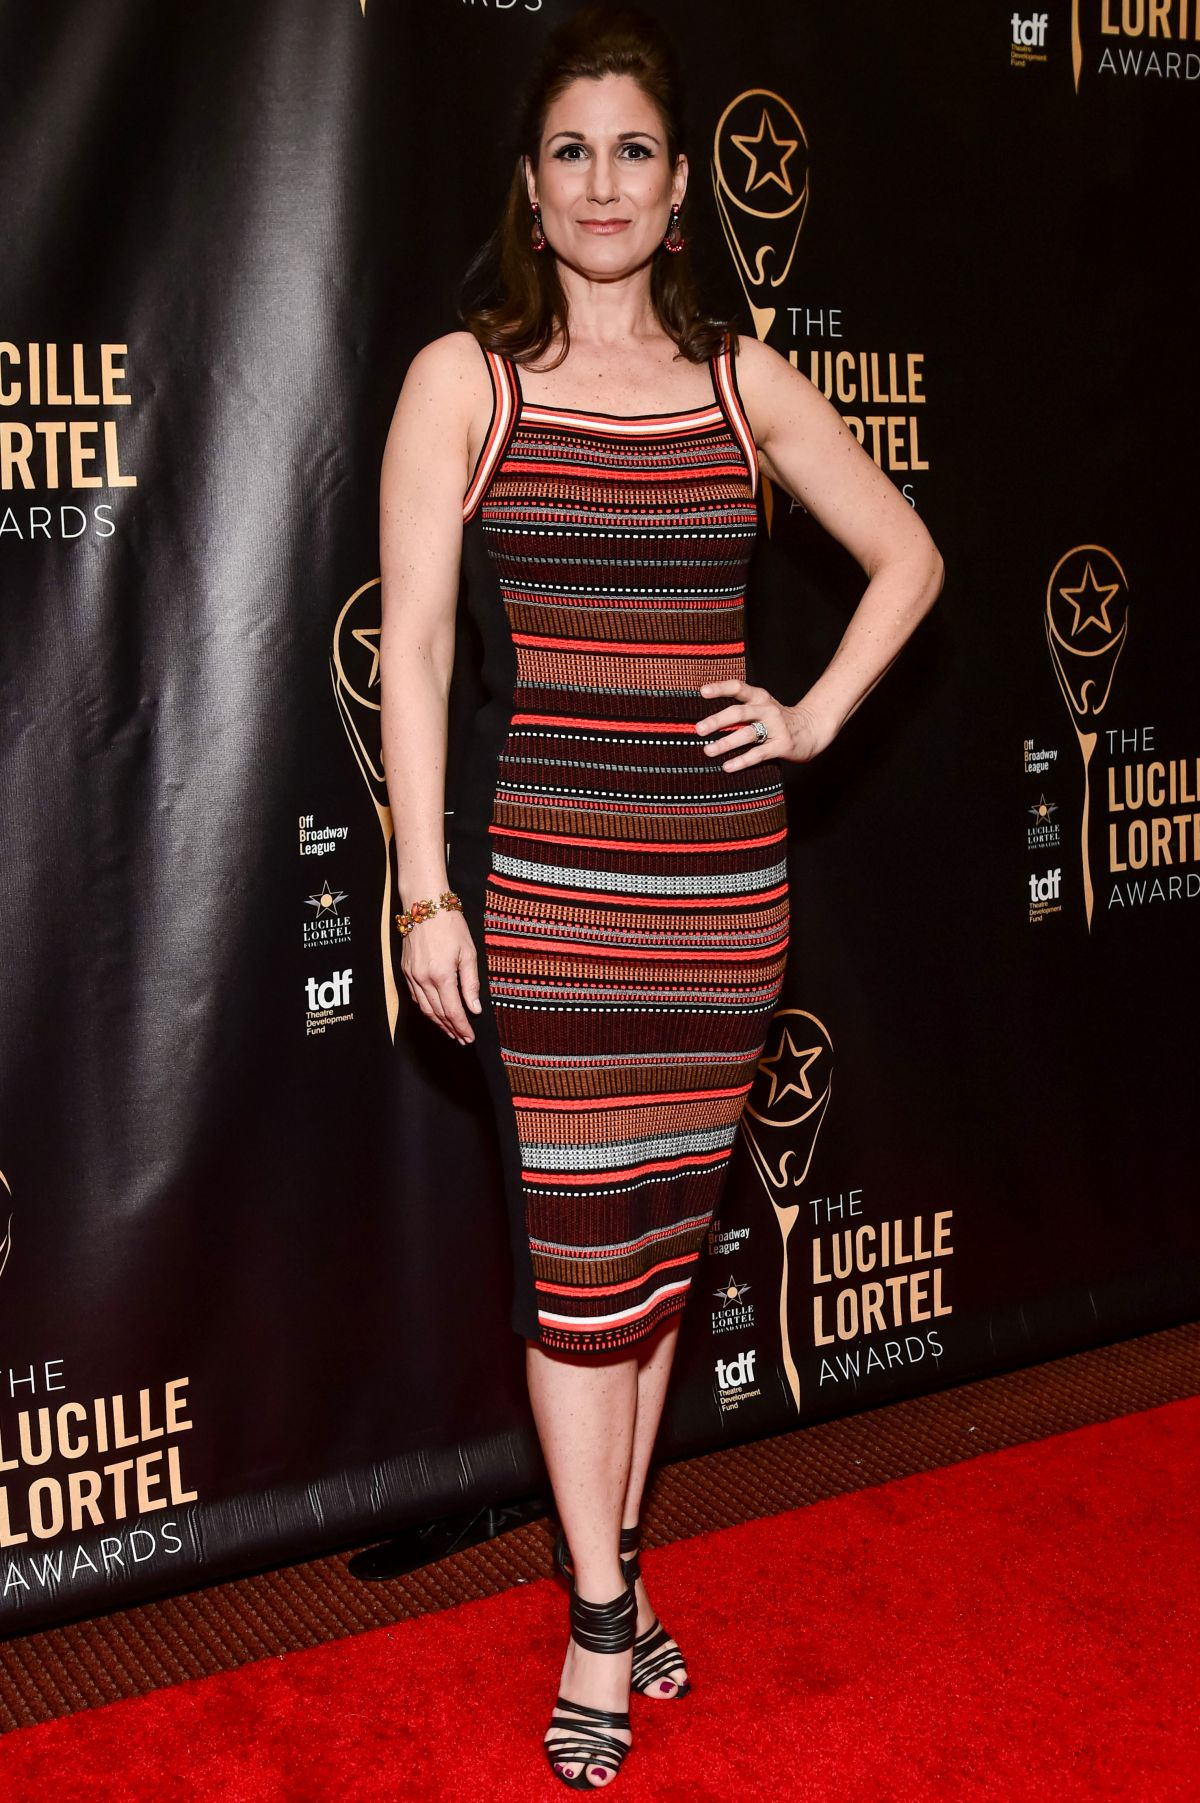 STEPHANIE J. BLOCK at 32nd Annual Lucille Lortel Awards in New York 05/07/2017